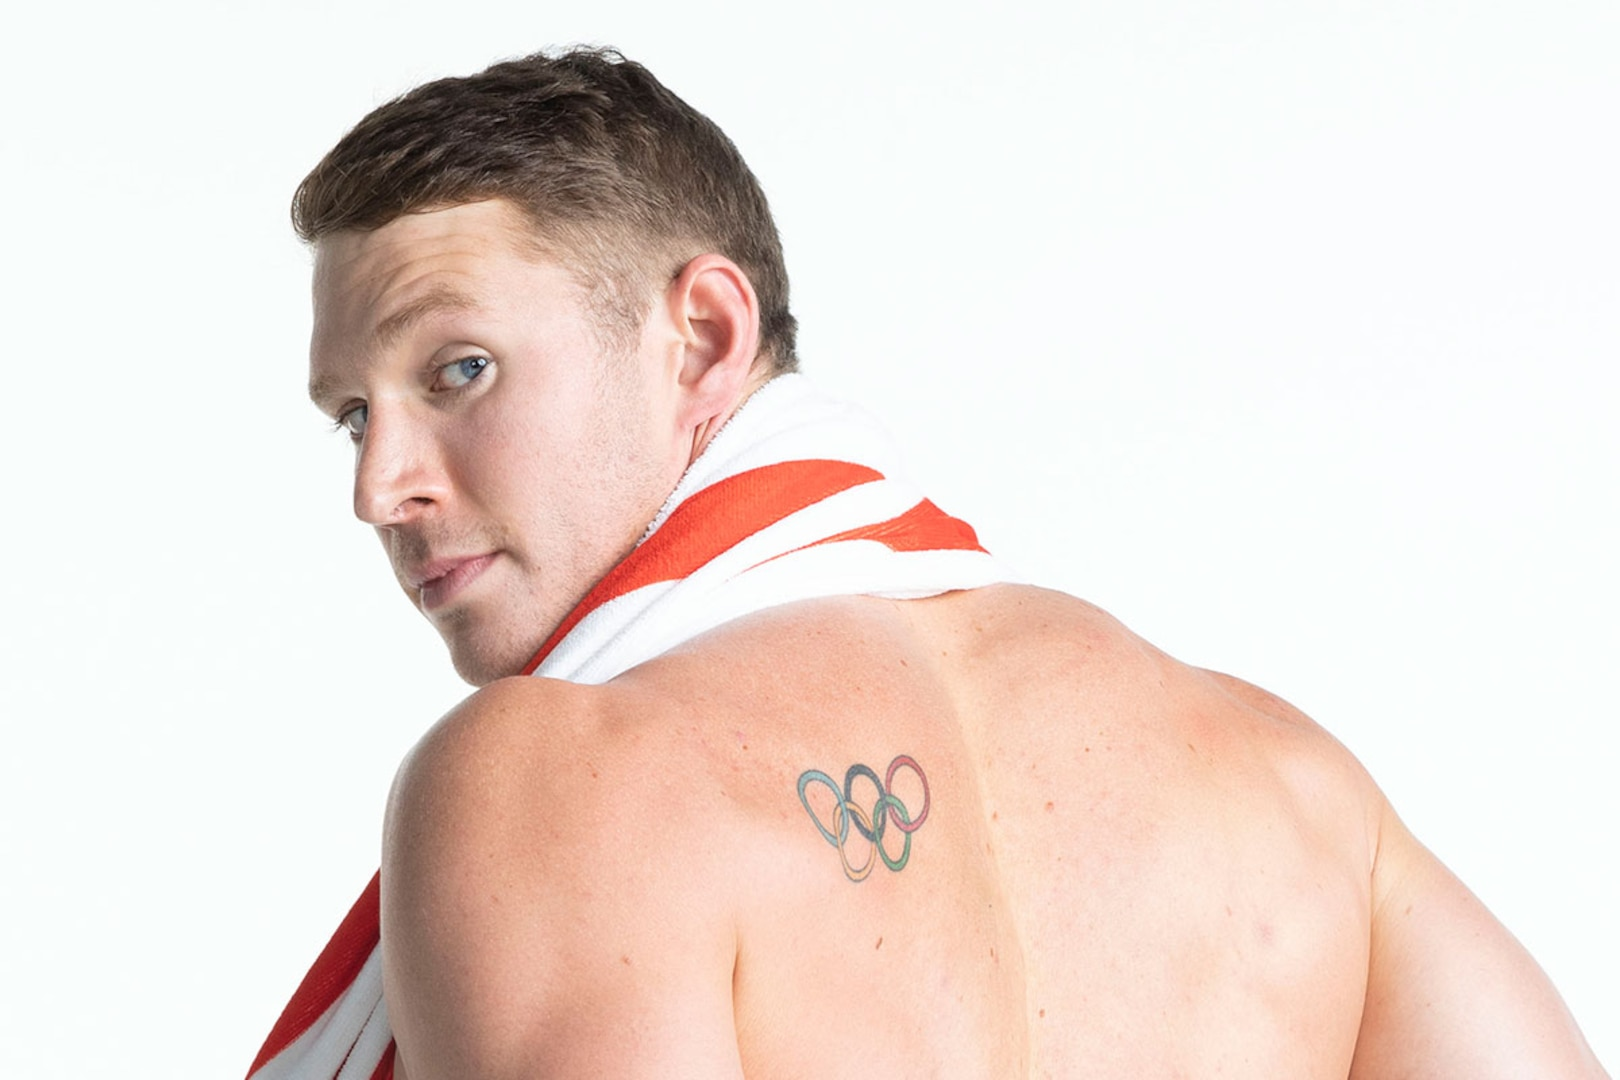 Ryan Murphy shows off the tattoo on his back